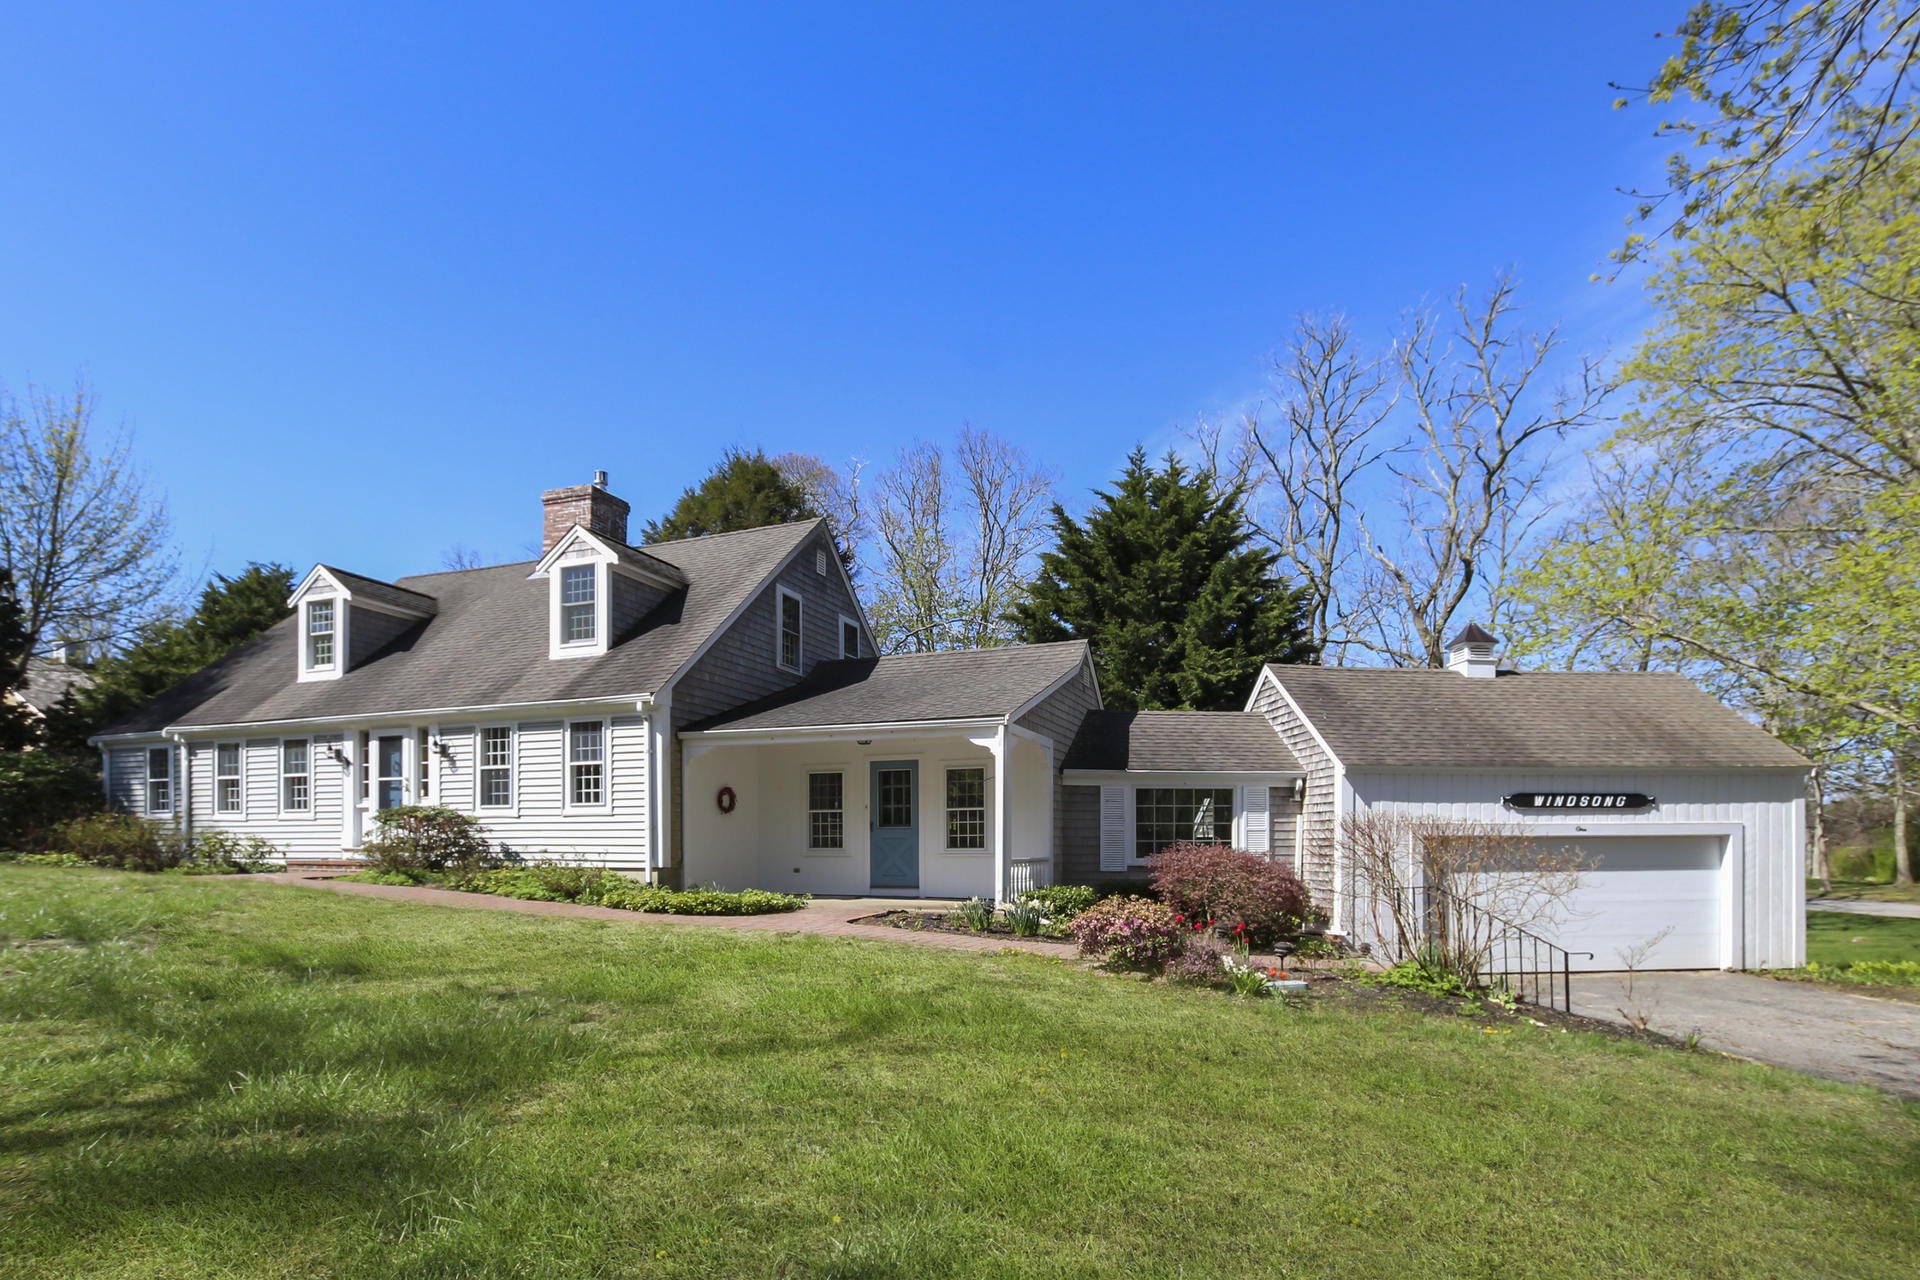 1-winslow-drive-orleans-ma-02653